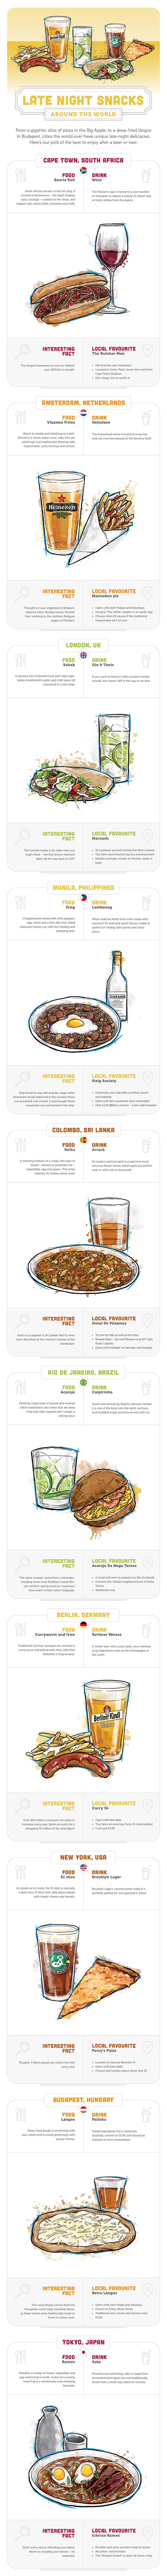 Foodie's Guide to Late Night Snacks Around the World - Infographic